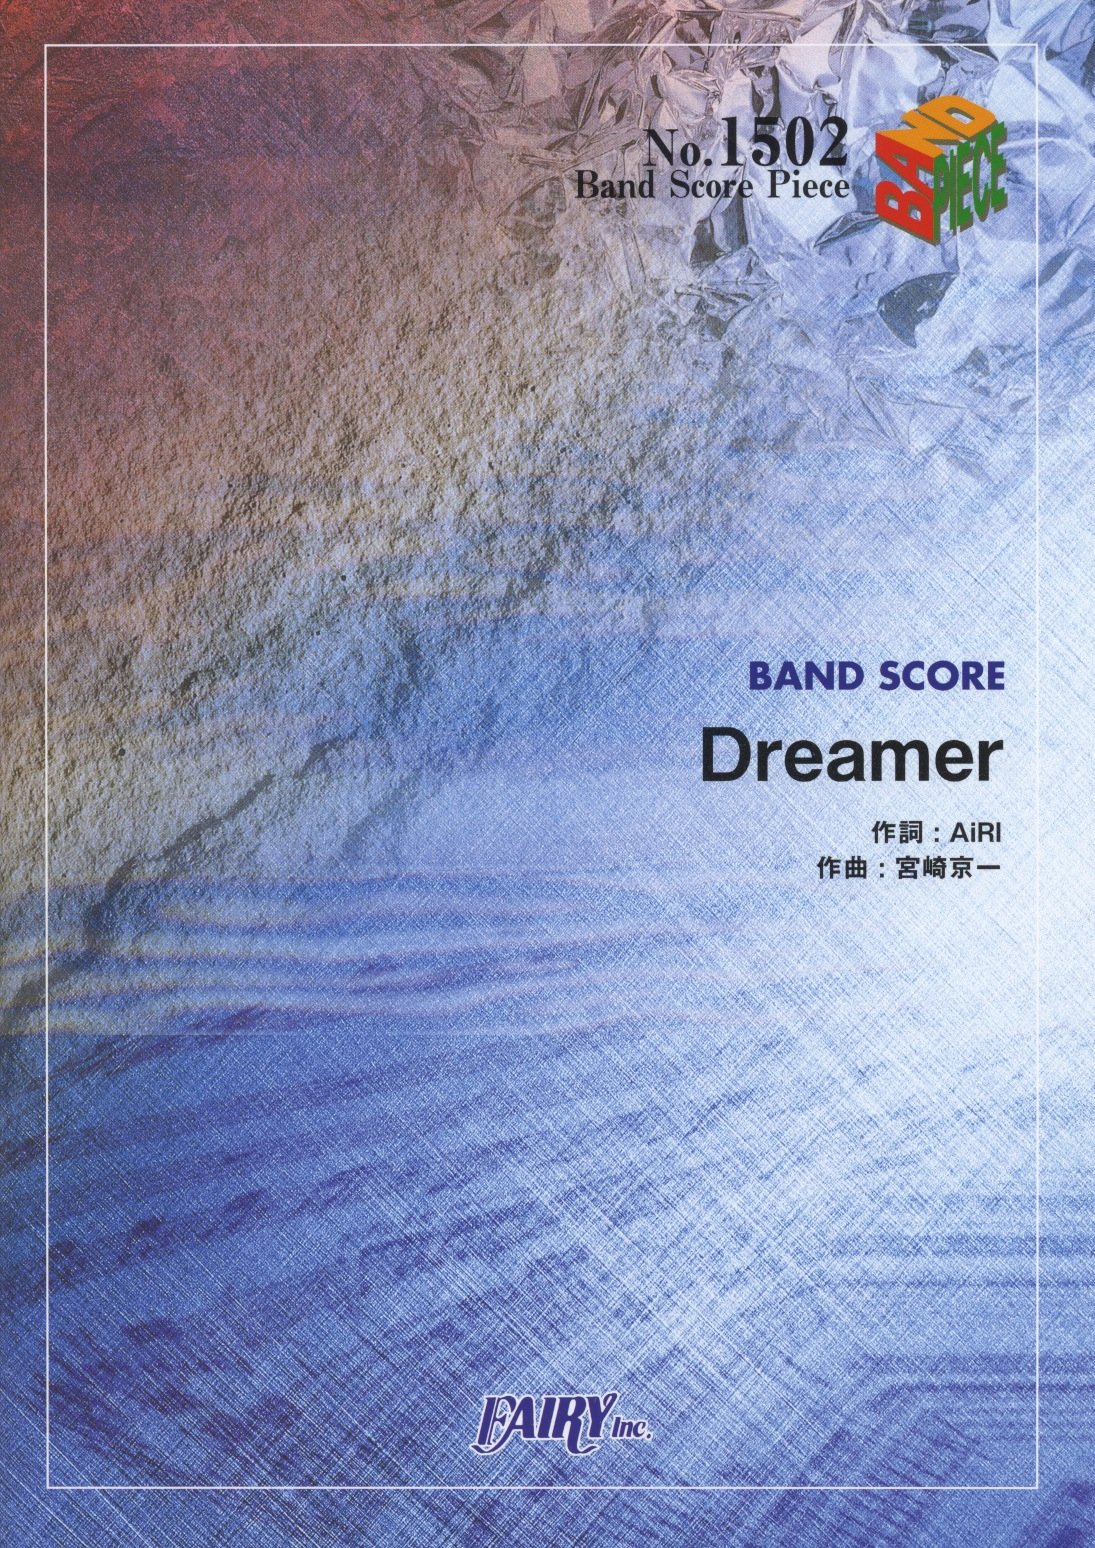 Read Online バンドスコアピース1502 Dreamer by AiRI (BAND SCORE PIECE) pdf